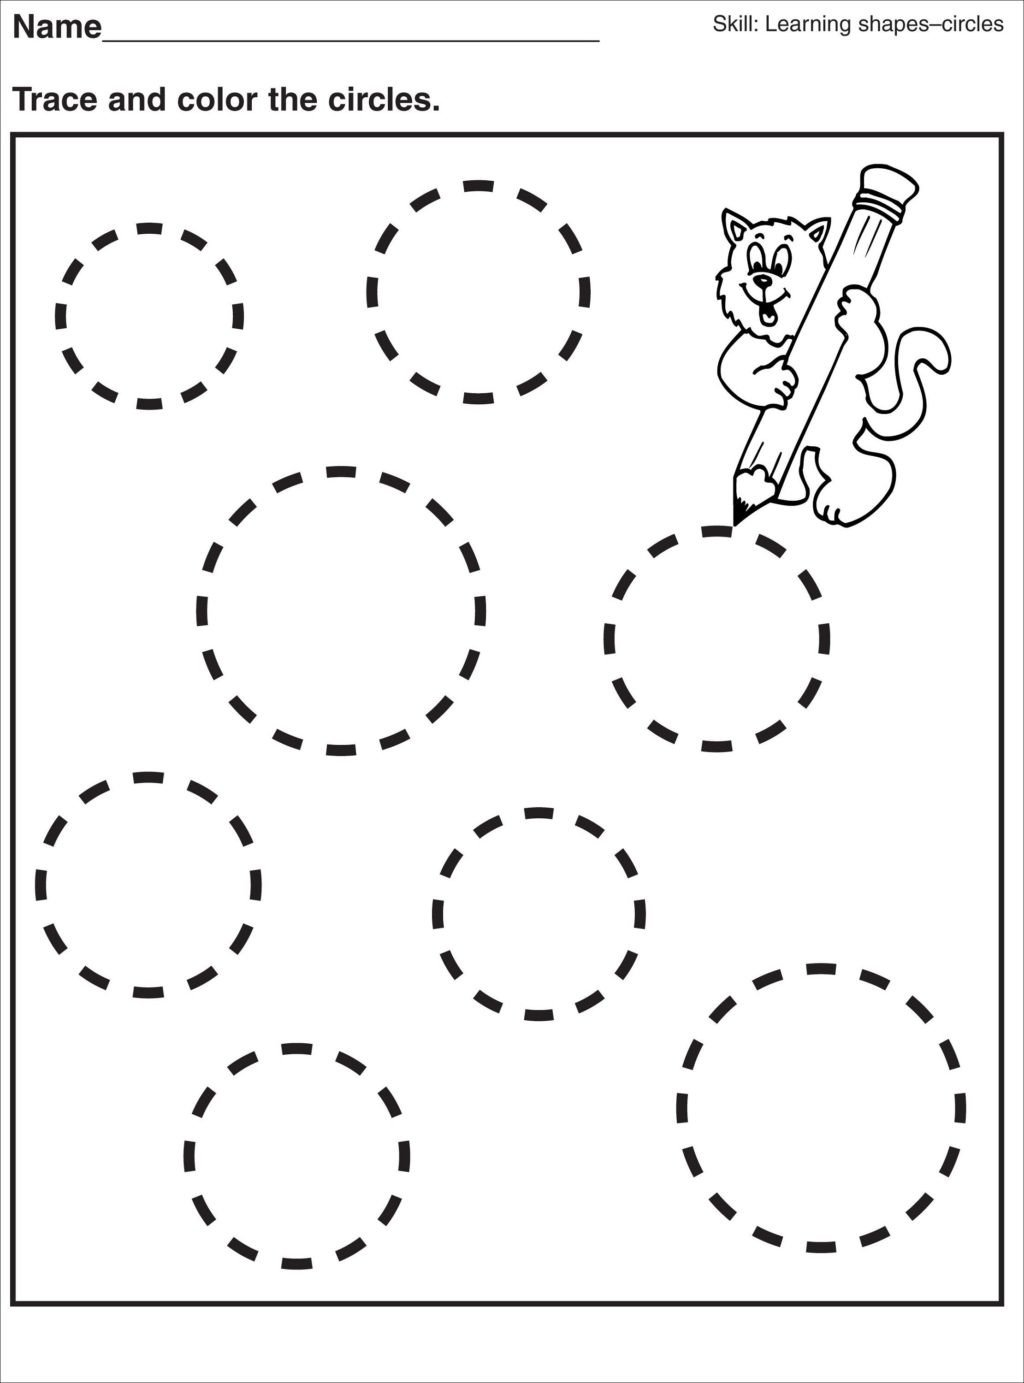 tracing pagesor preschool shapes worksheet kindergarten activity worksheets preschoolers image inspirationsree 1024x1383